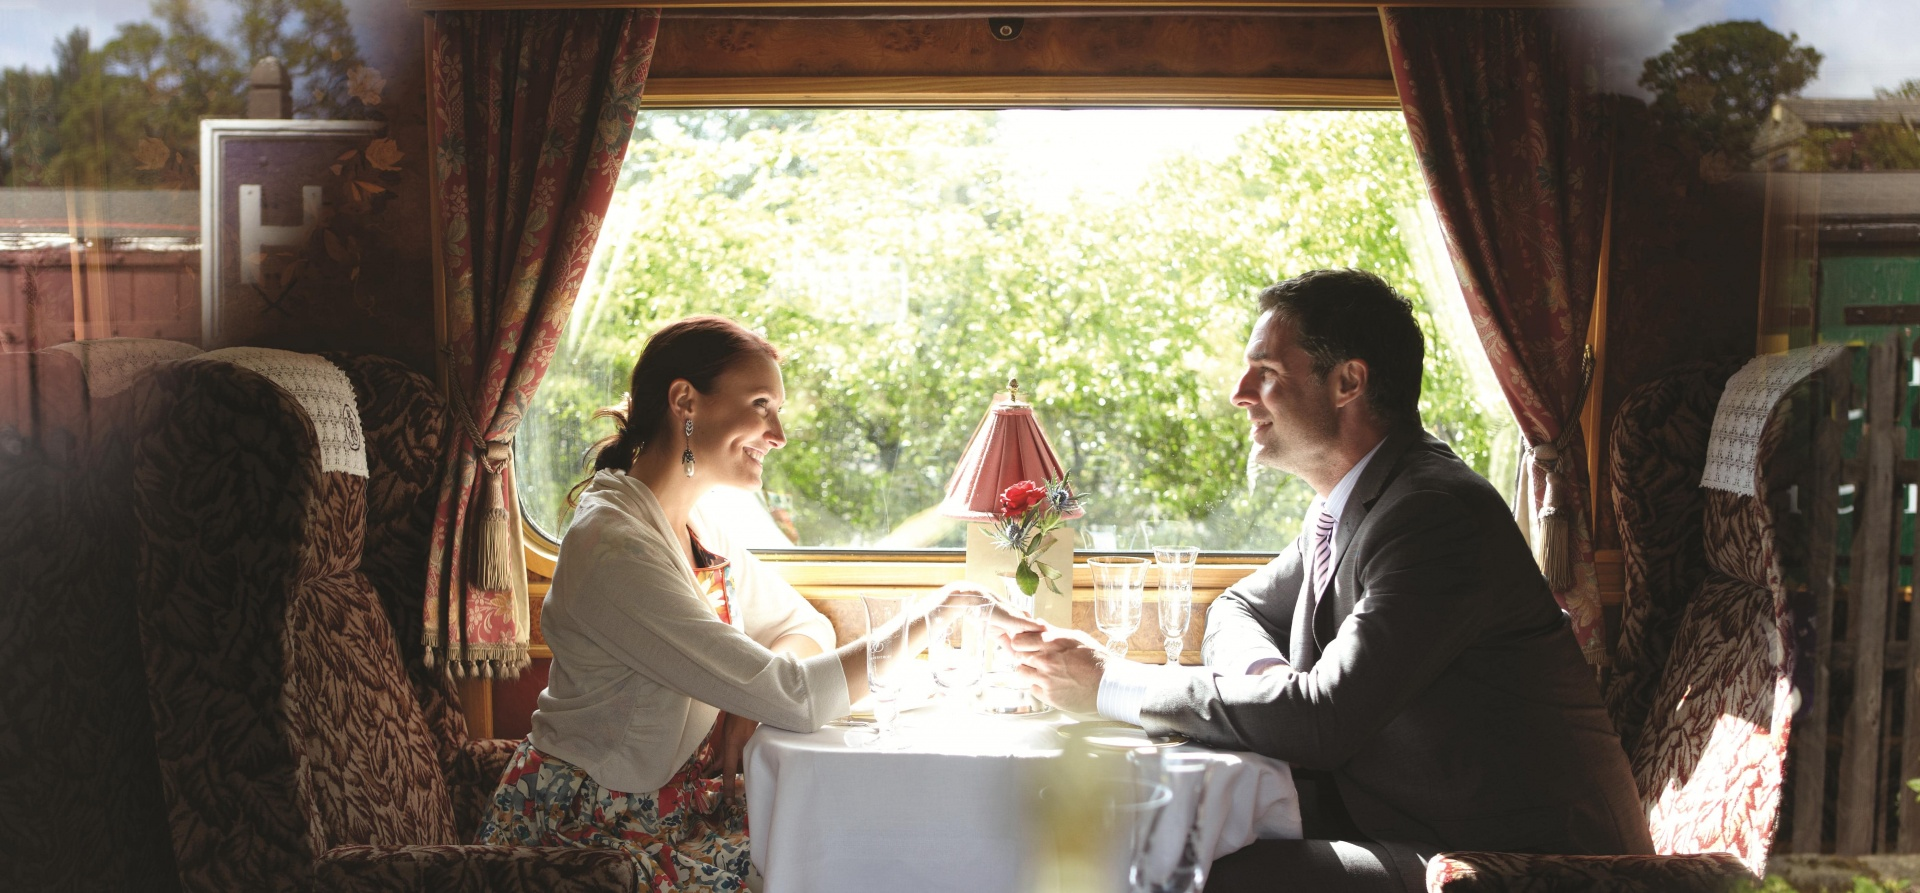 Belmond Northern Belle Luxury Day Excursions-10